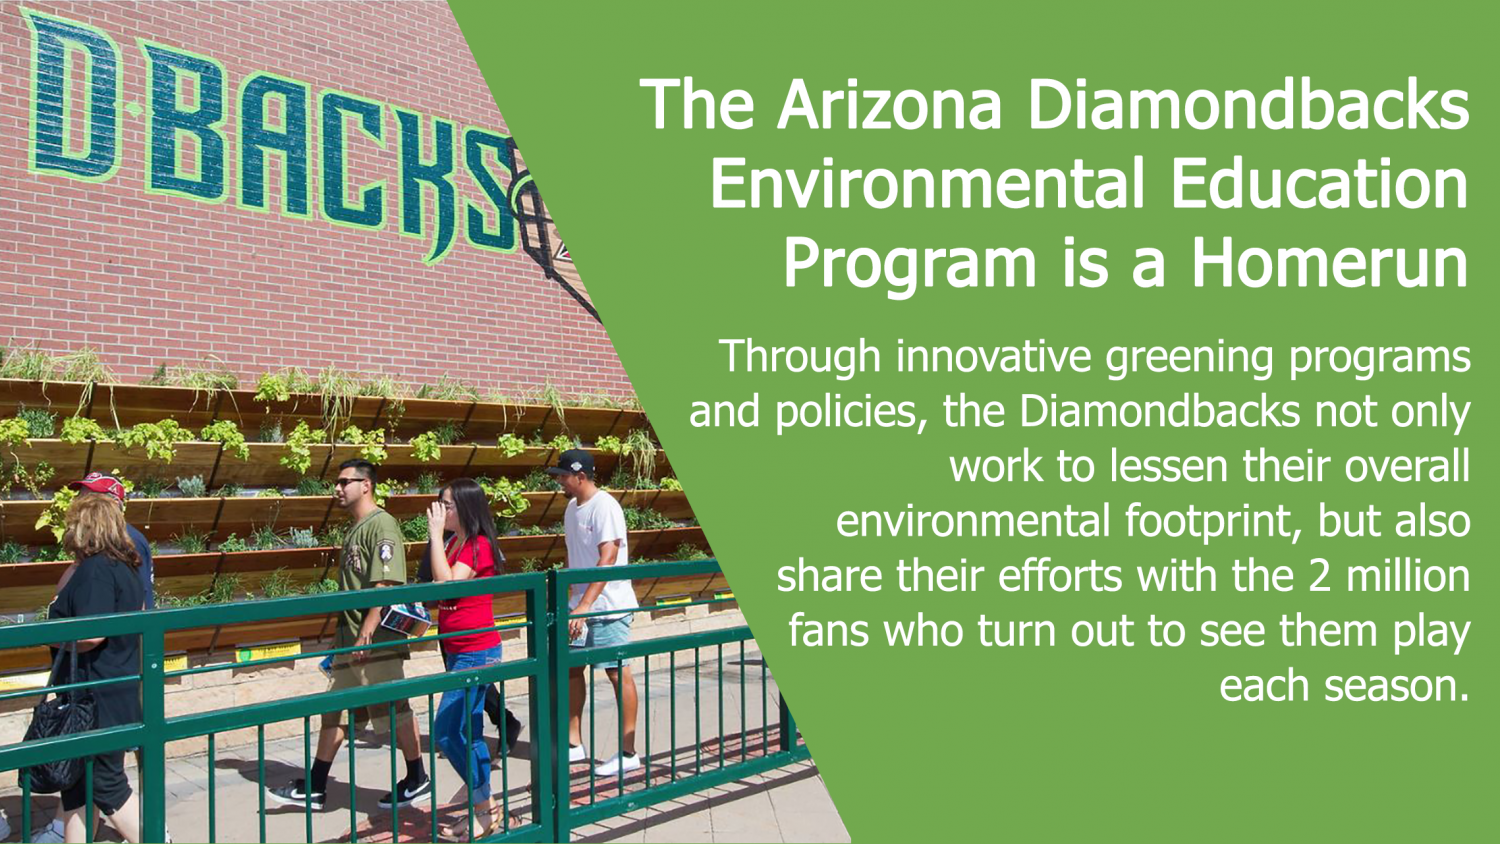 The Arizona Diamondbacks Environmental Education Program is a Homerun: Through innovative greening programs and policies, the Diamondbacks not only work to lessen their overall environmental footprint, but also share their efforts with the 2 million fans